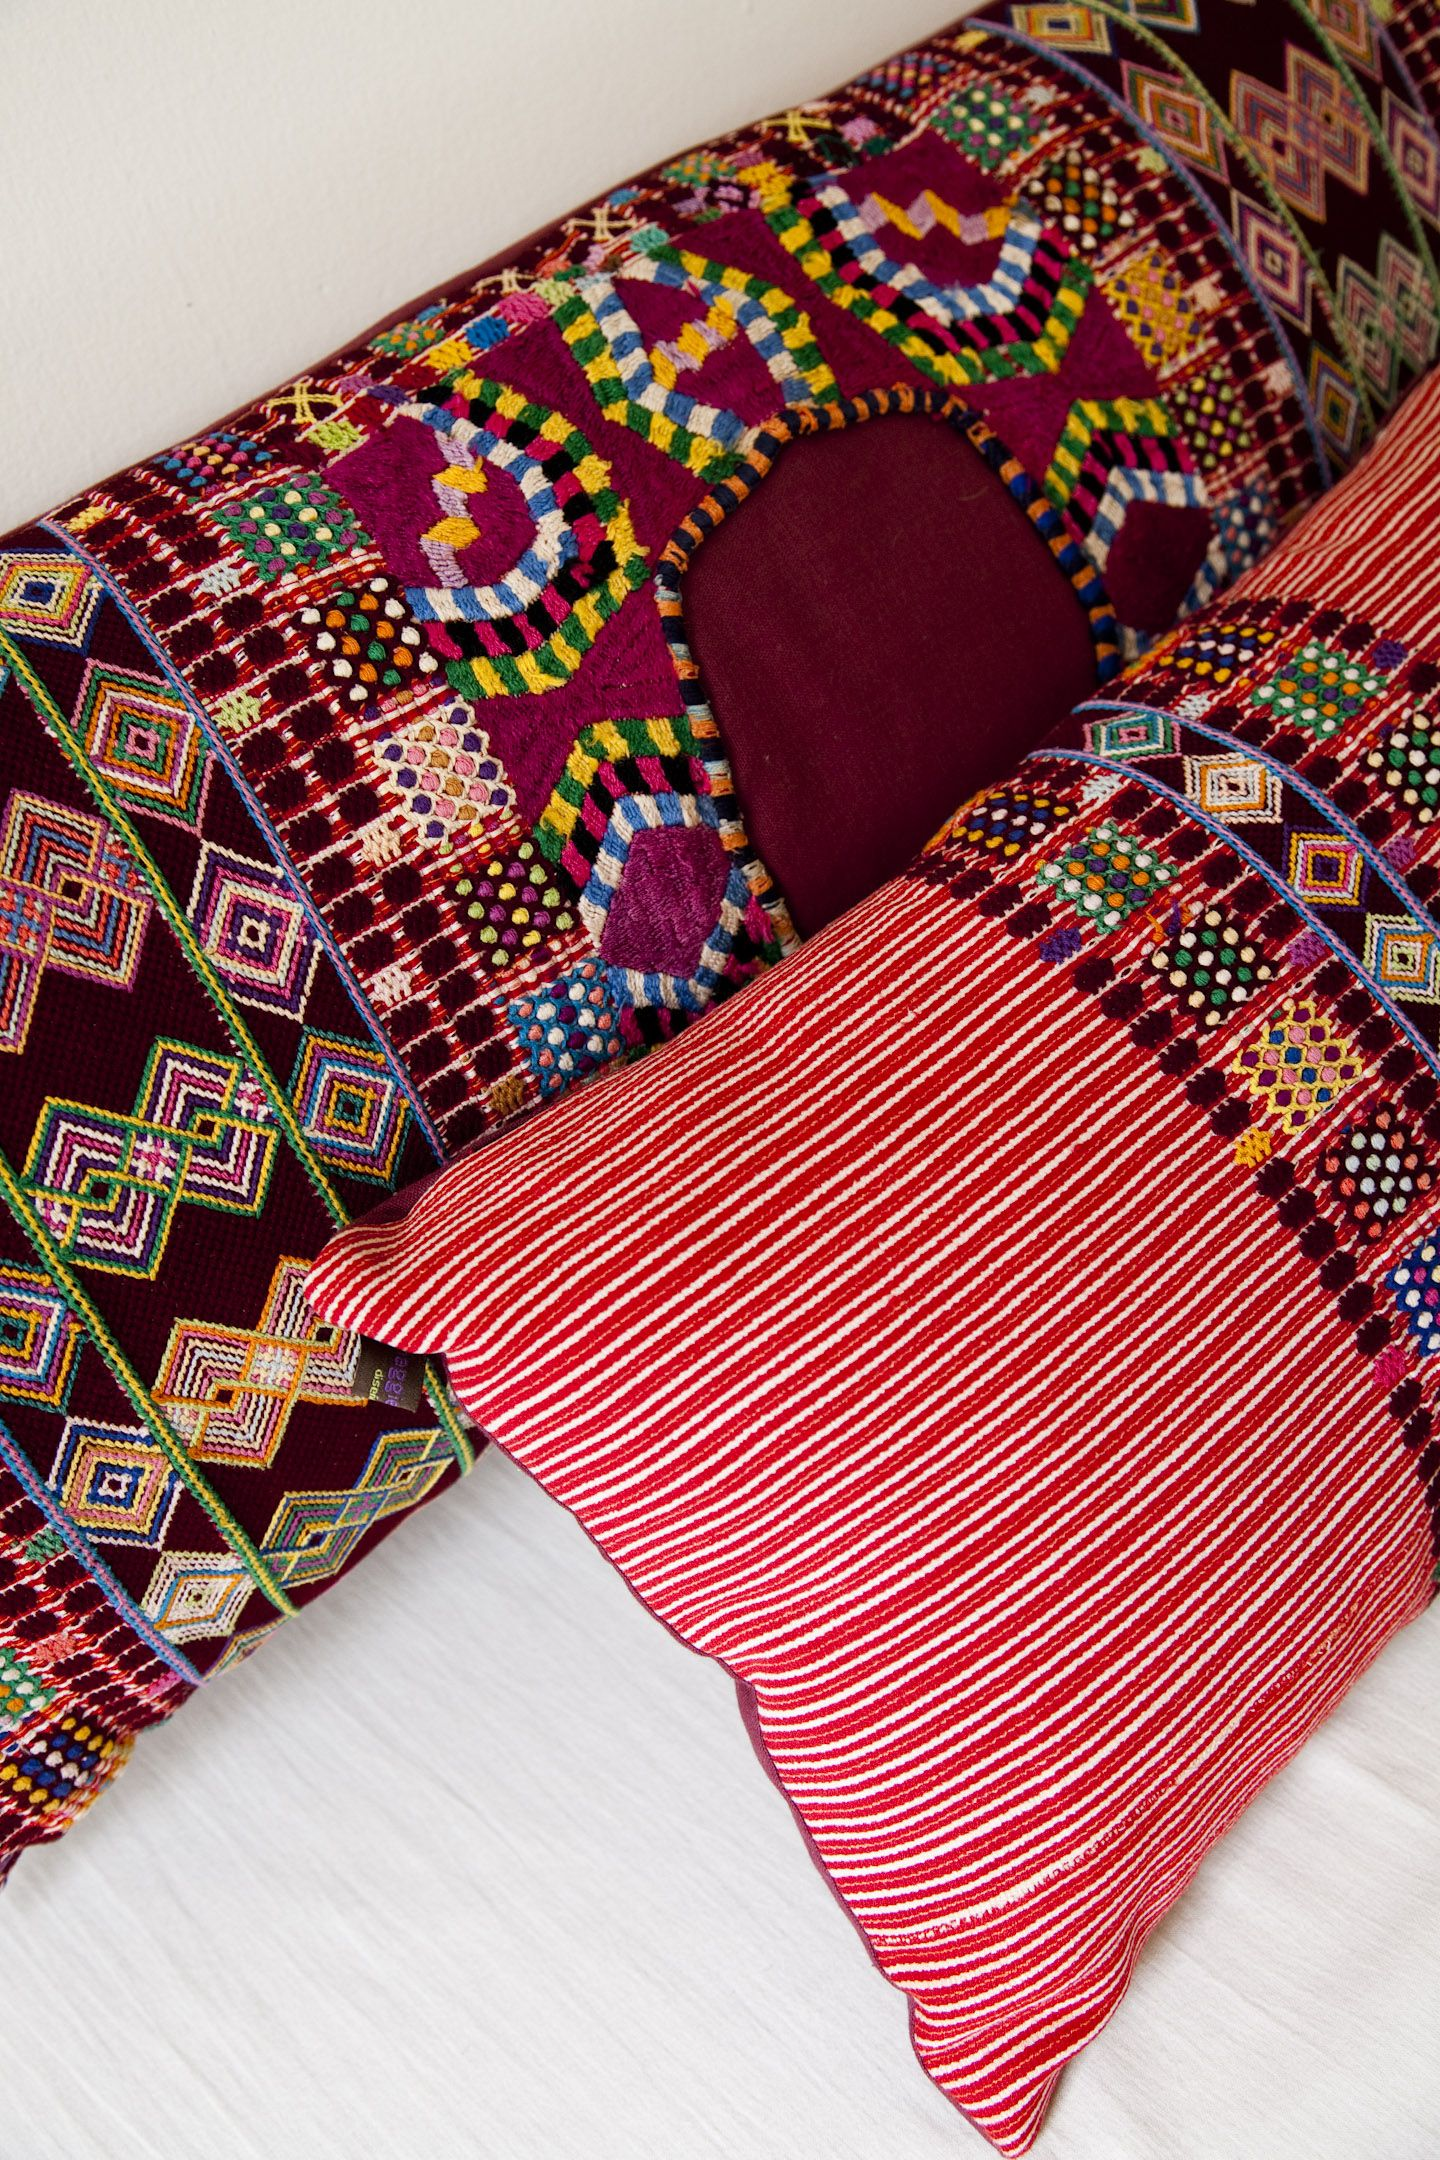 Hand Woven And Brocaded Cotton Huipil Pillows Get In My